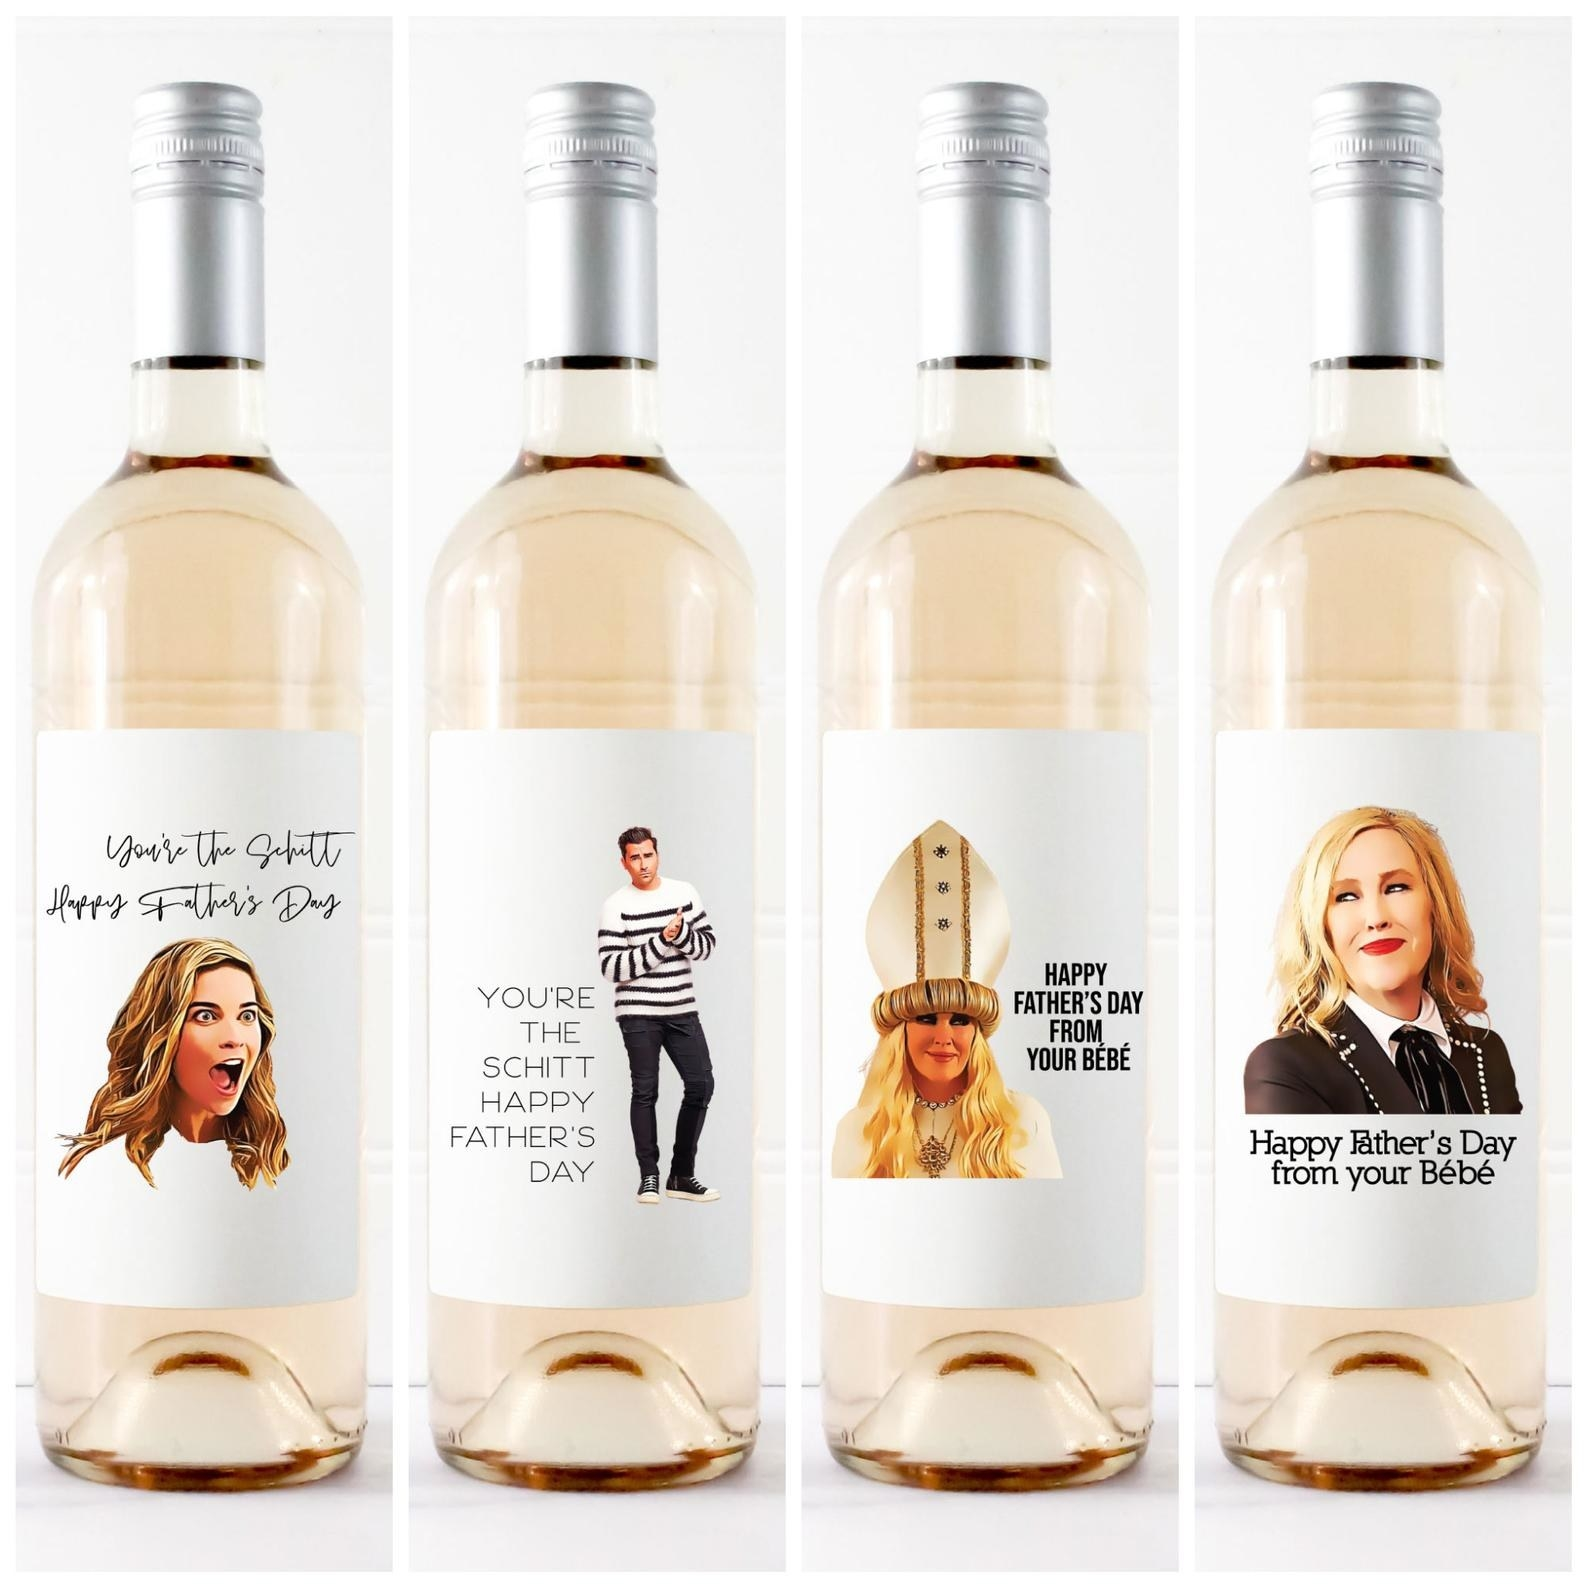 """four schitt's creek-themed labels on wine bottles that say things like """"happy father's day from your bébé"""" and """"you're the schitt, happy father's day"""""""